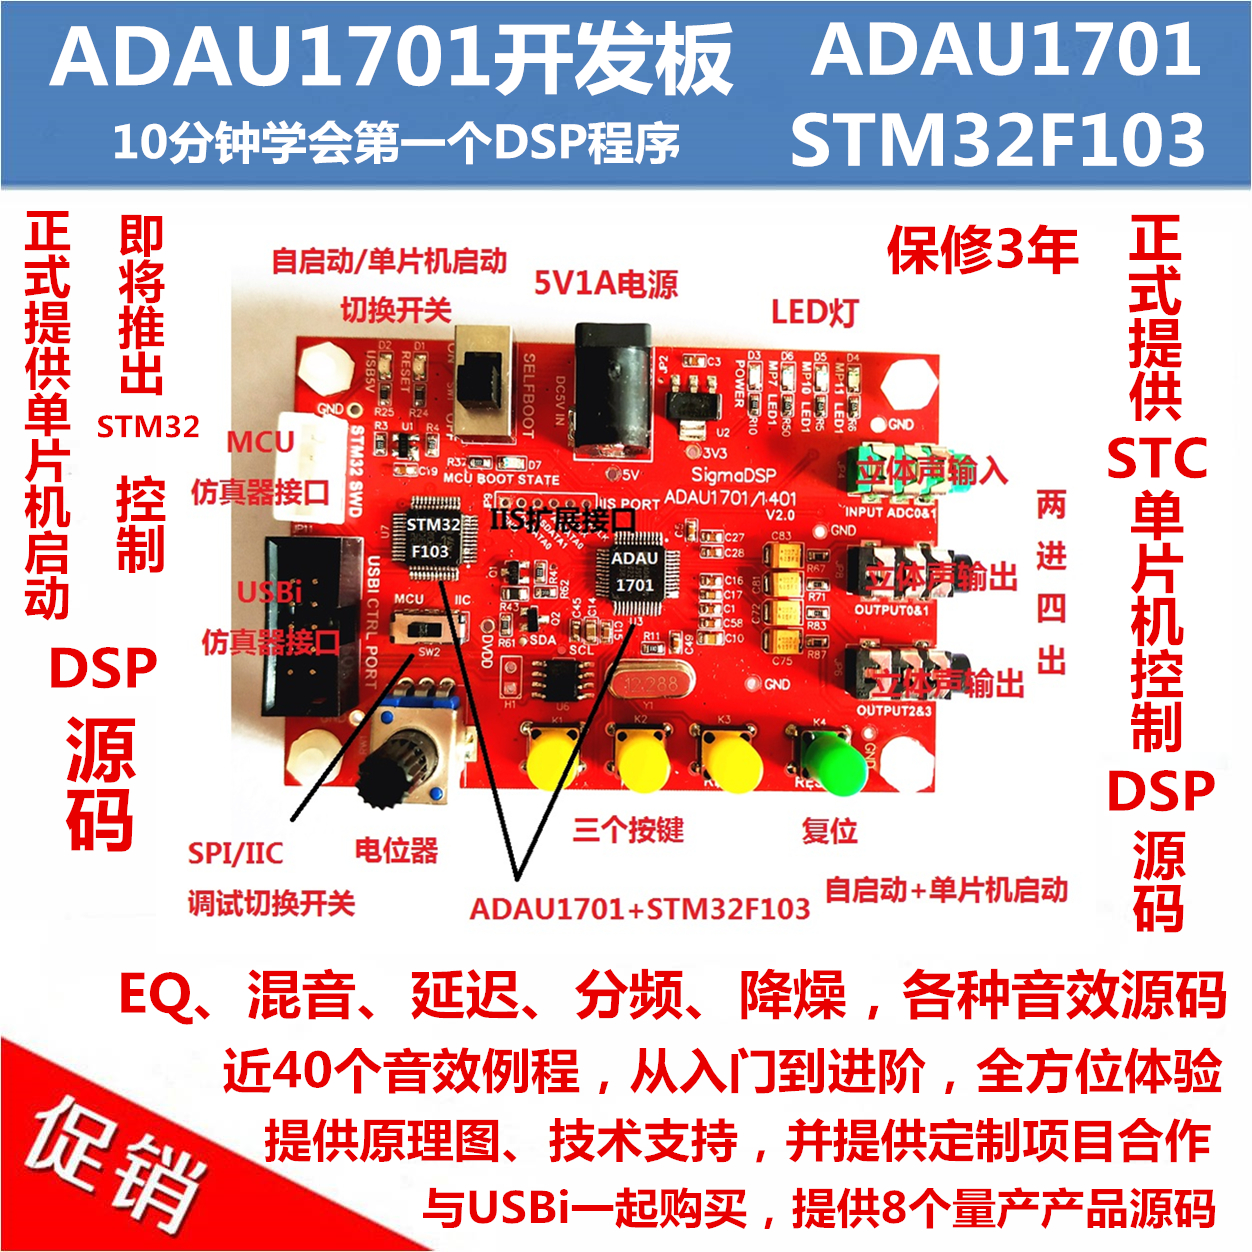 openadsp Open Source Community Sigmadsp Development Board Mcu Dsp Liberal Adau1701 Development Board